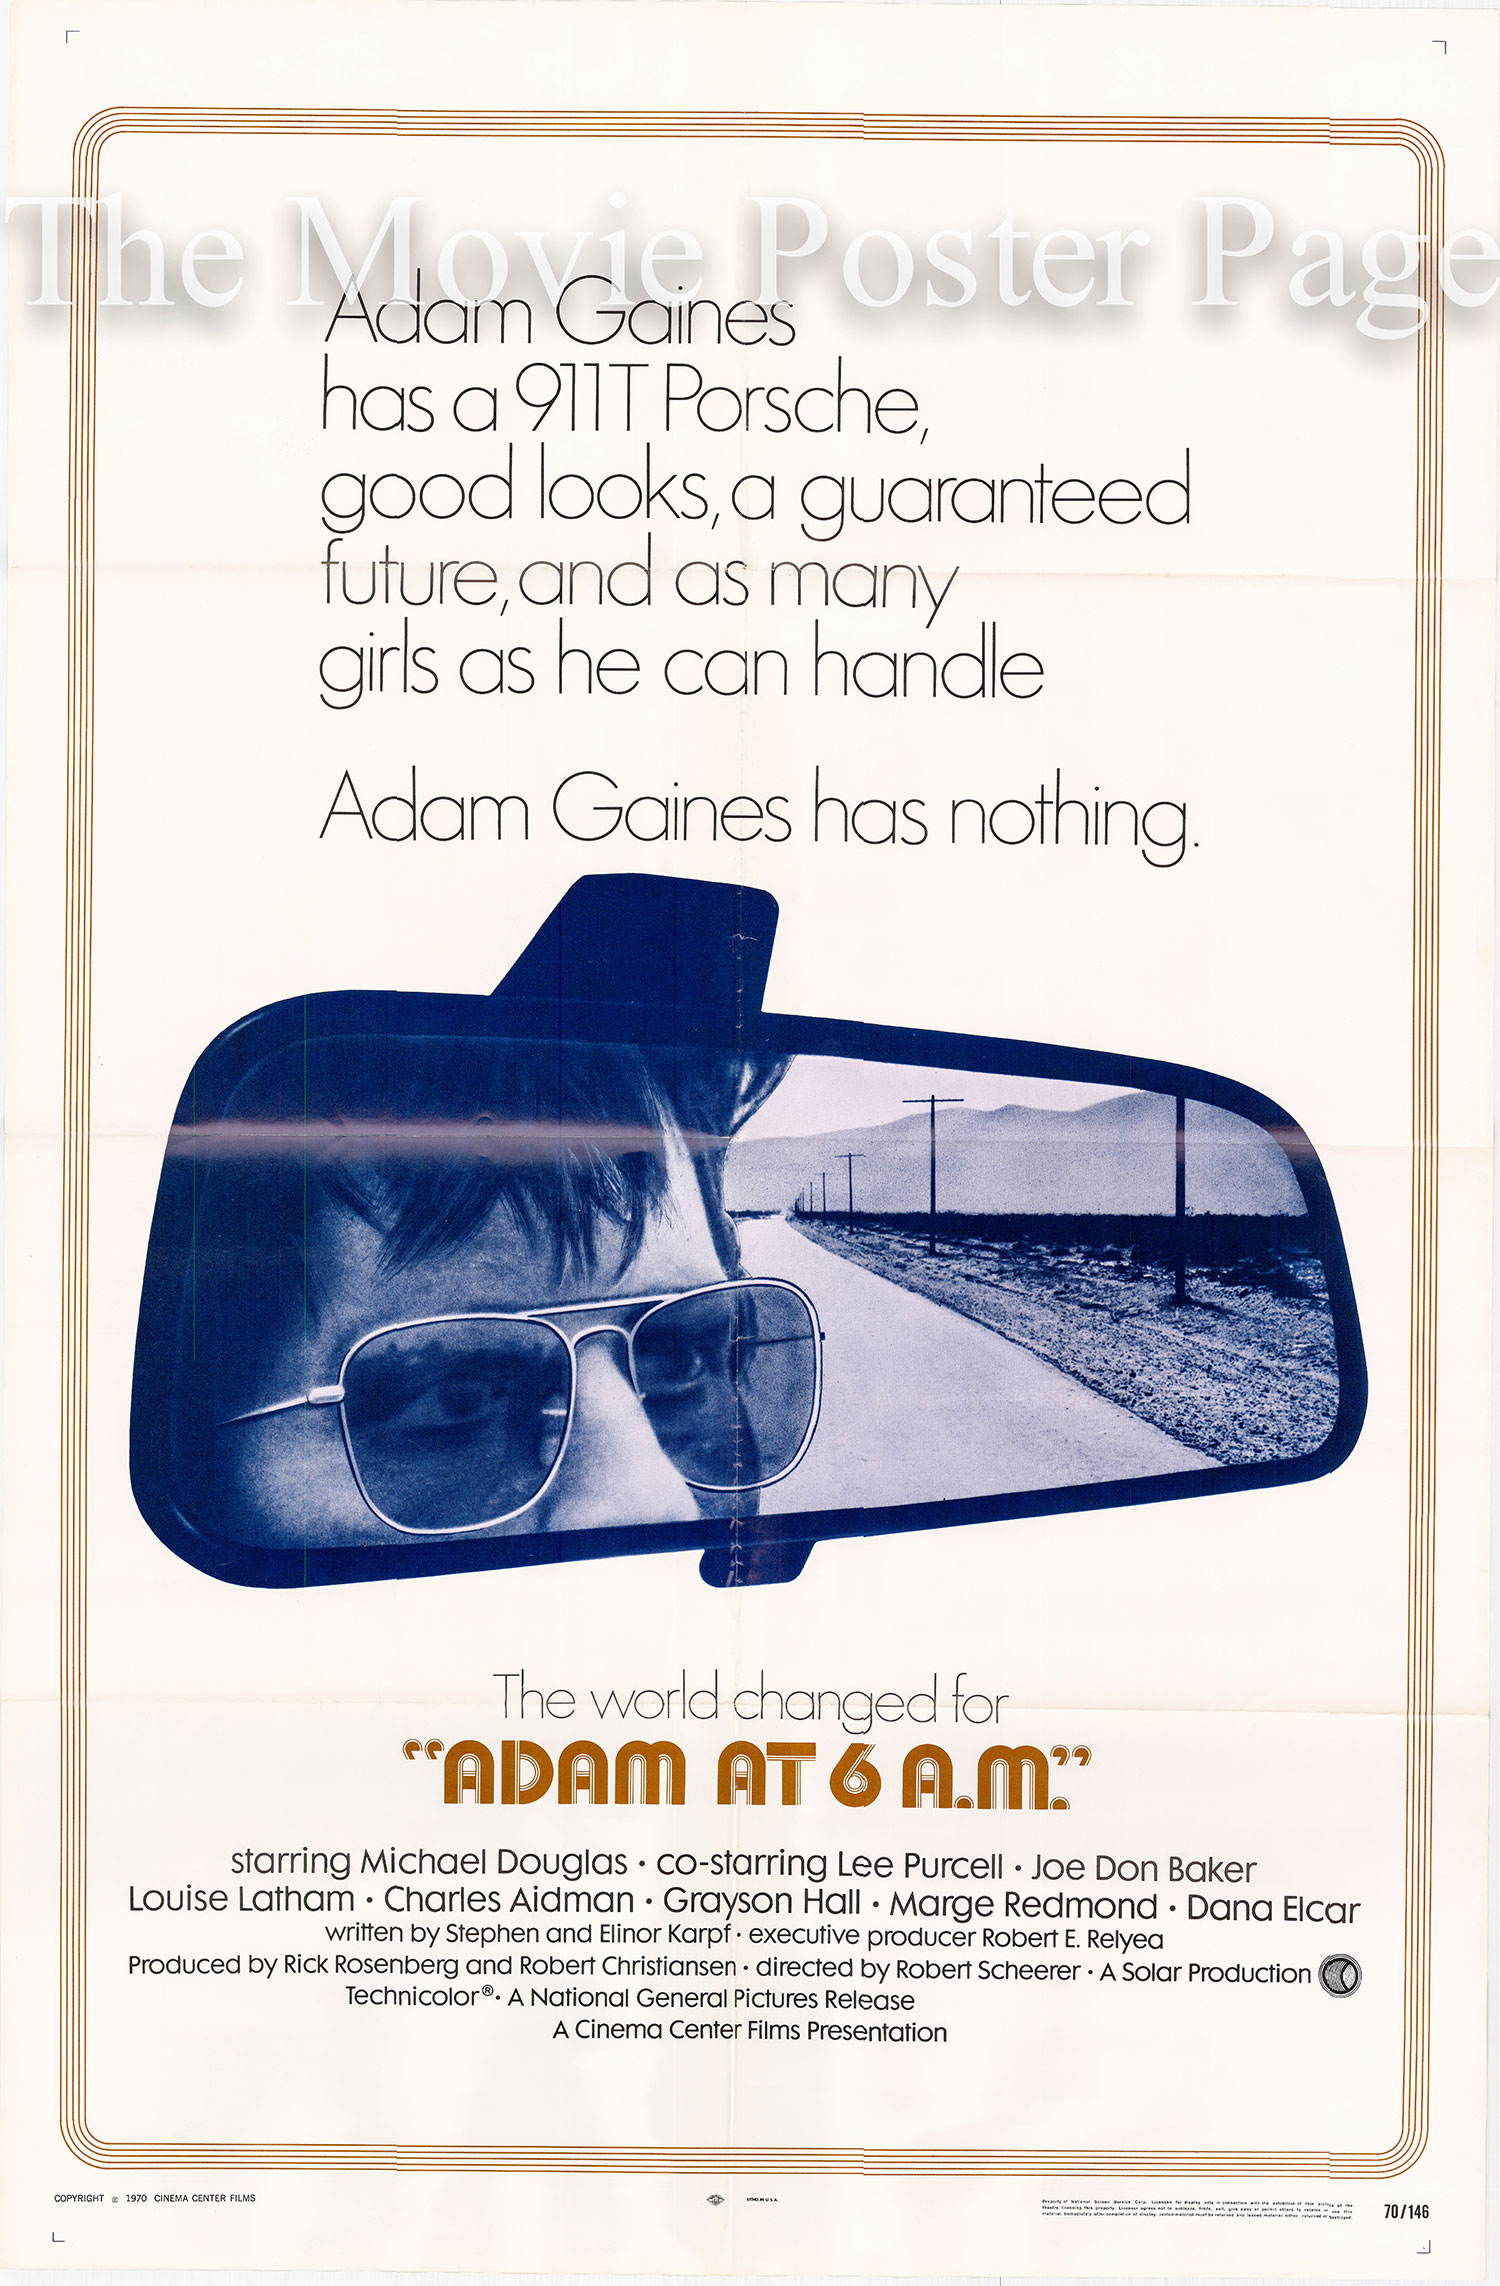 Pictured is as US promotional poster for the 1970 Robert Scheerer film Adam at 6 a.m. starring Michael Douglas.